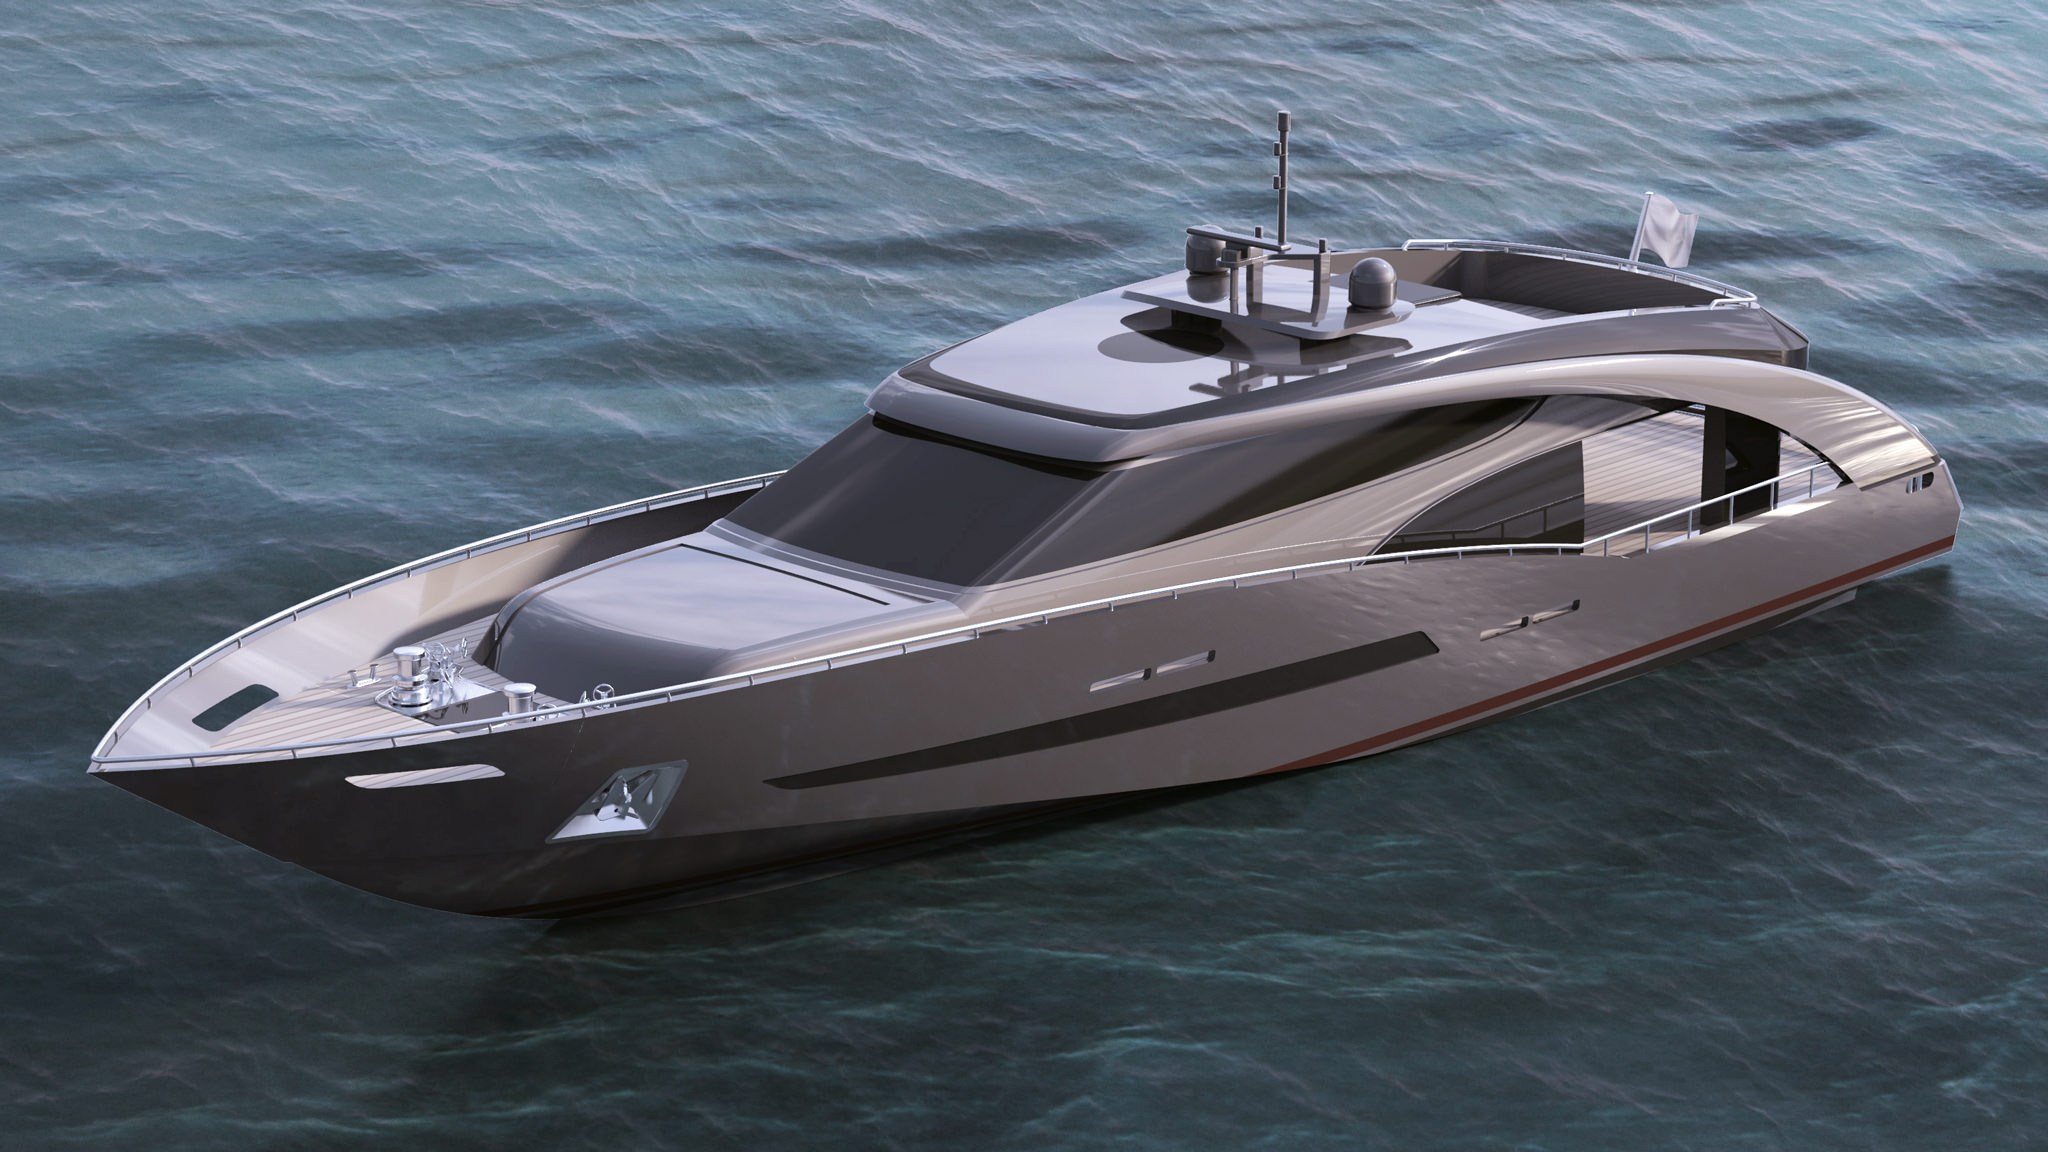 <div class='divtestFont'><a href='2017/05/17/enccn-announces-the-sale-of-a-new-fuoriserie-yacht-to-an-italian-owner-itccn-annuncia-la-vendita-di-un-nuovo-fuoriserie-per-un-armatore-italiano/'><div class='testFont'>A new dream, a new Fuoriserie</div><div class='testFont1'>CCN announces the sale of a new Fuoriserie yacht</div></a></div>